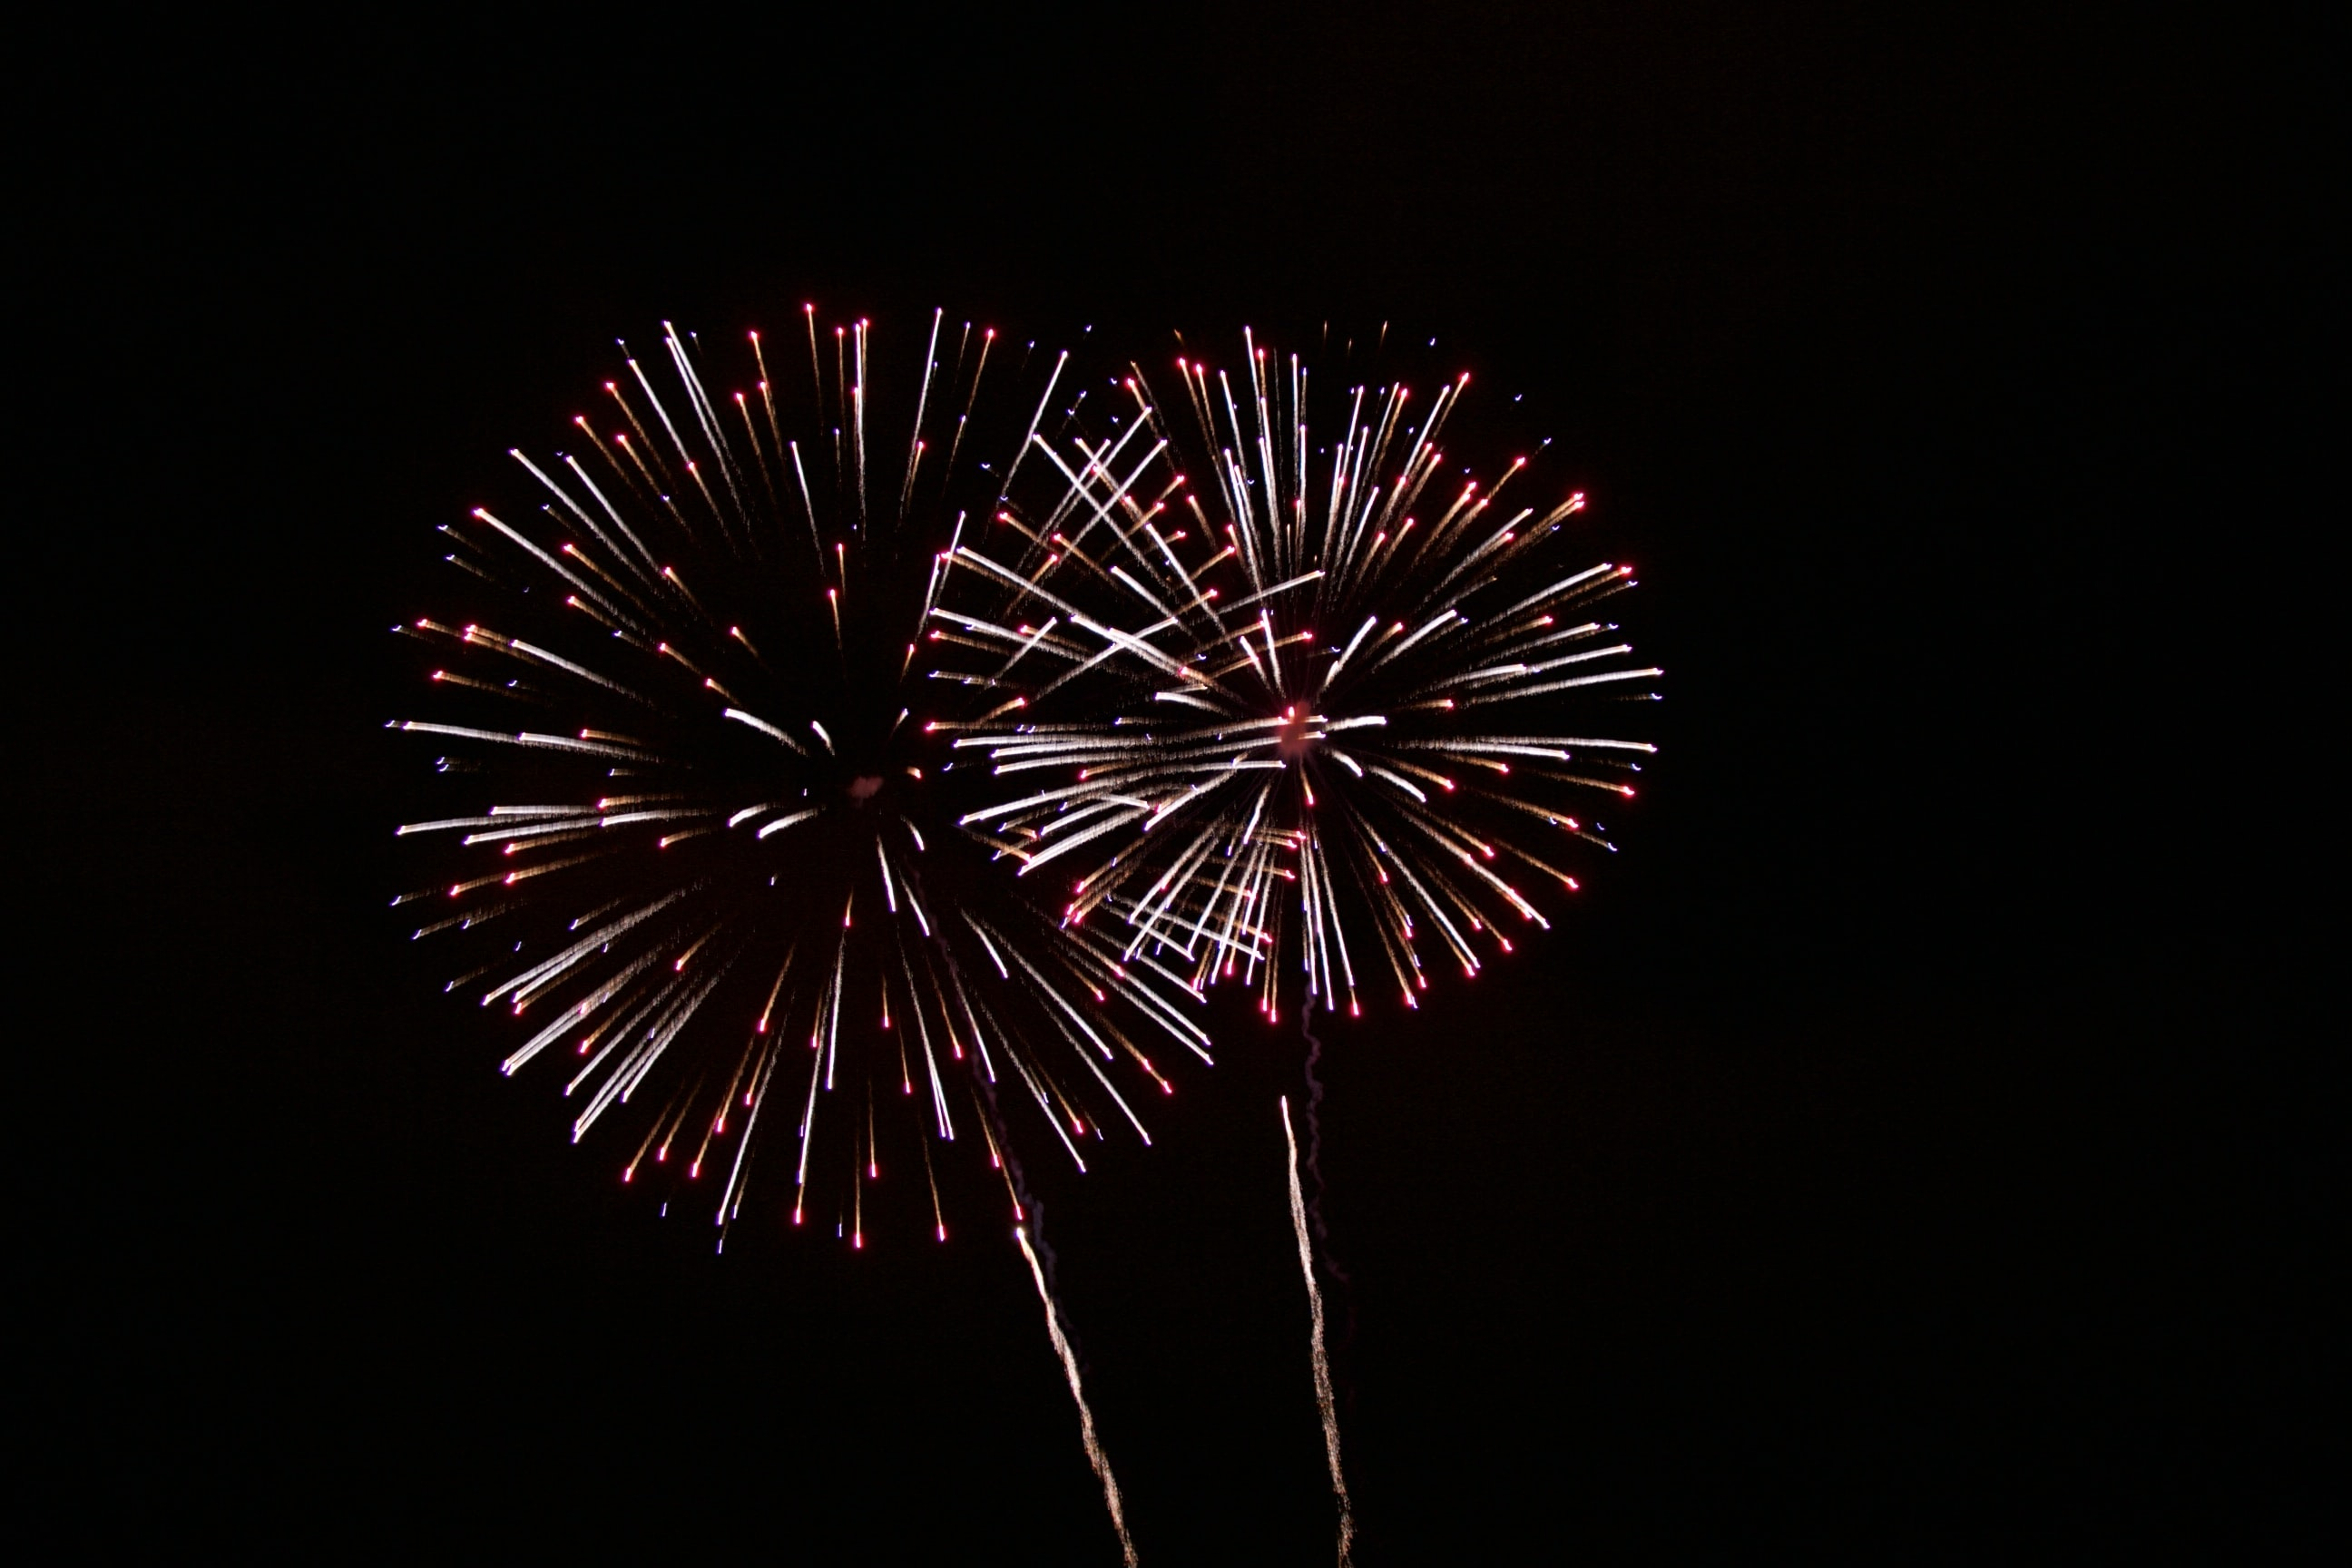 fireworks display photo